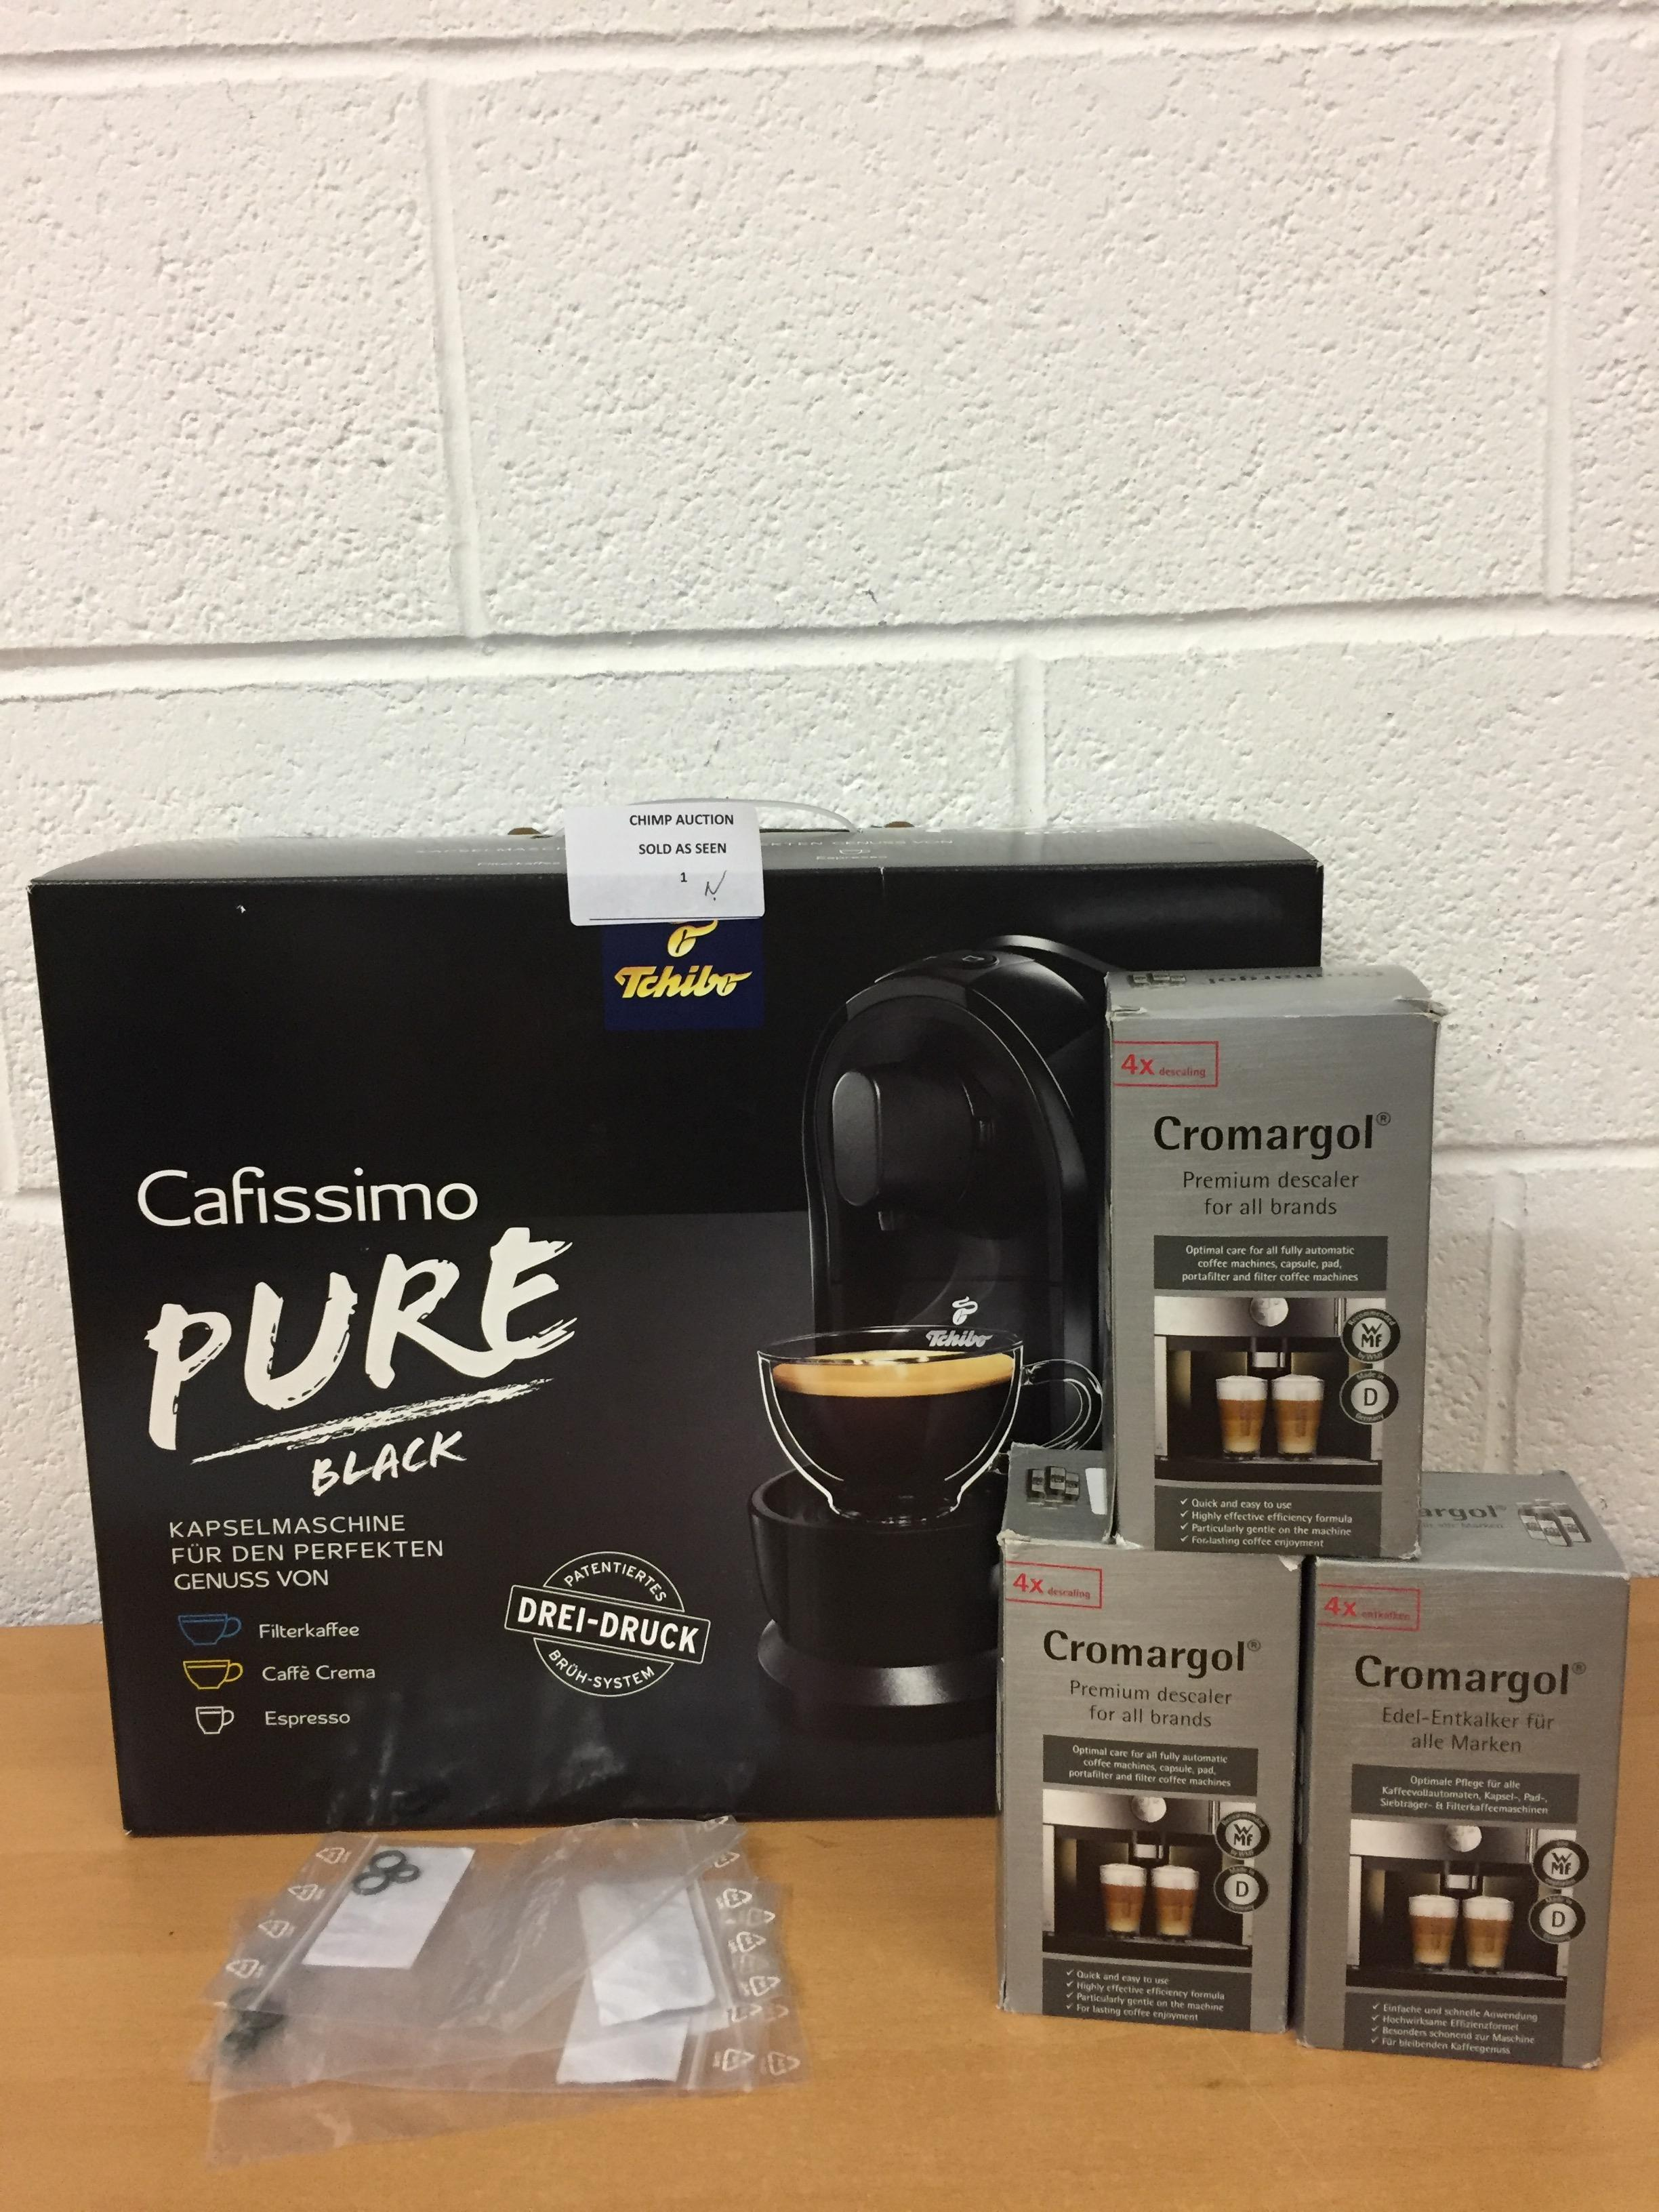 Lot 1 - Brand new Tchibo Cafissimo Pure Coffee Machine bundle RRP £229.99.